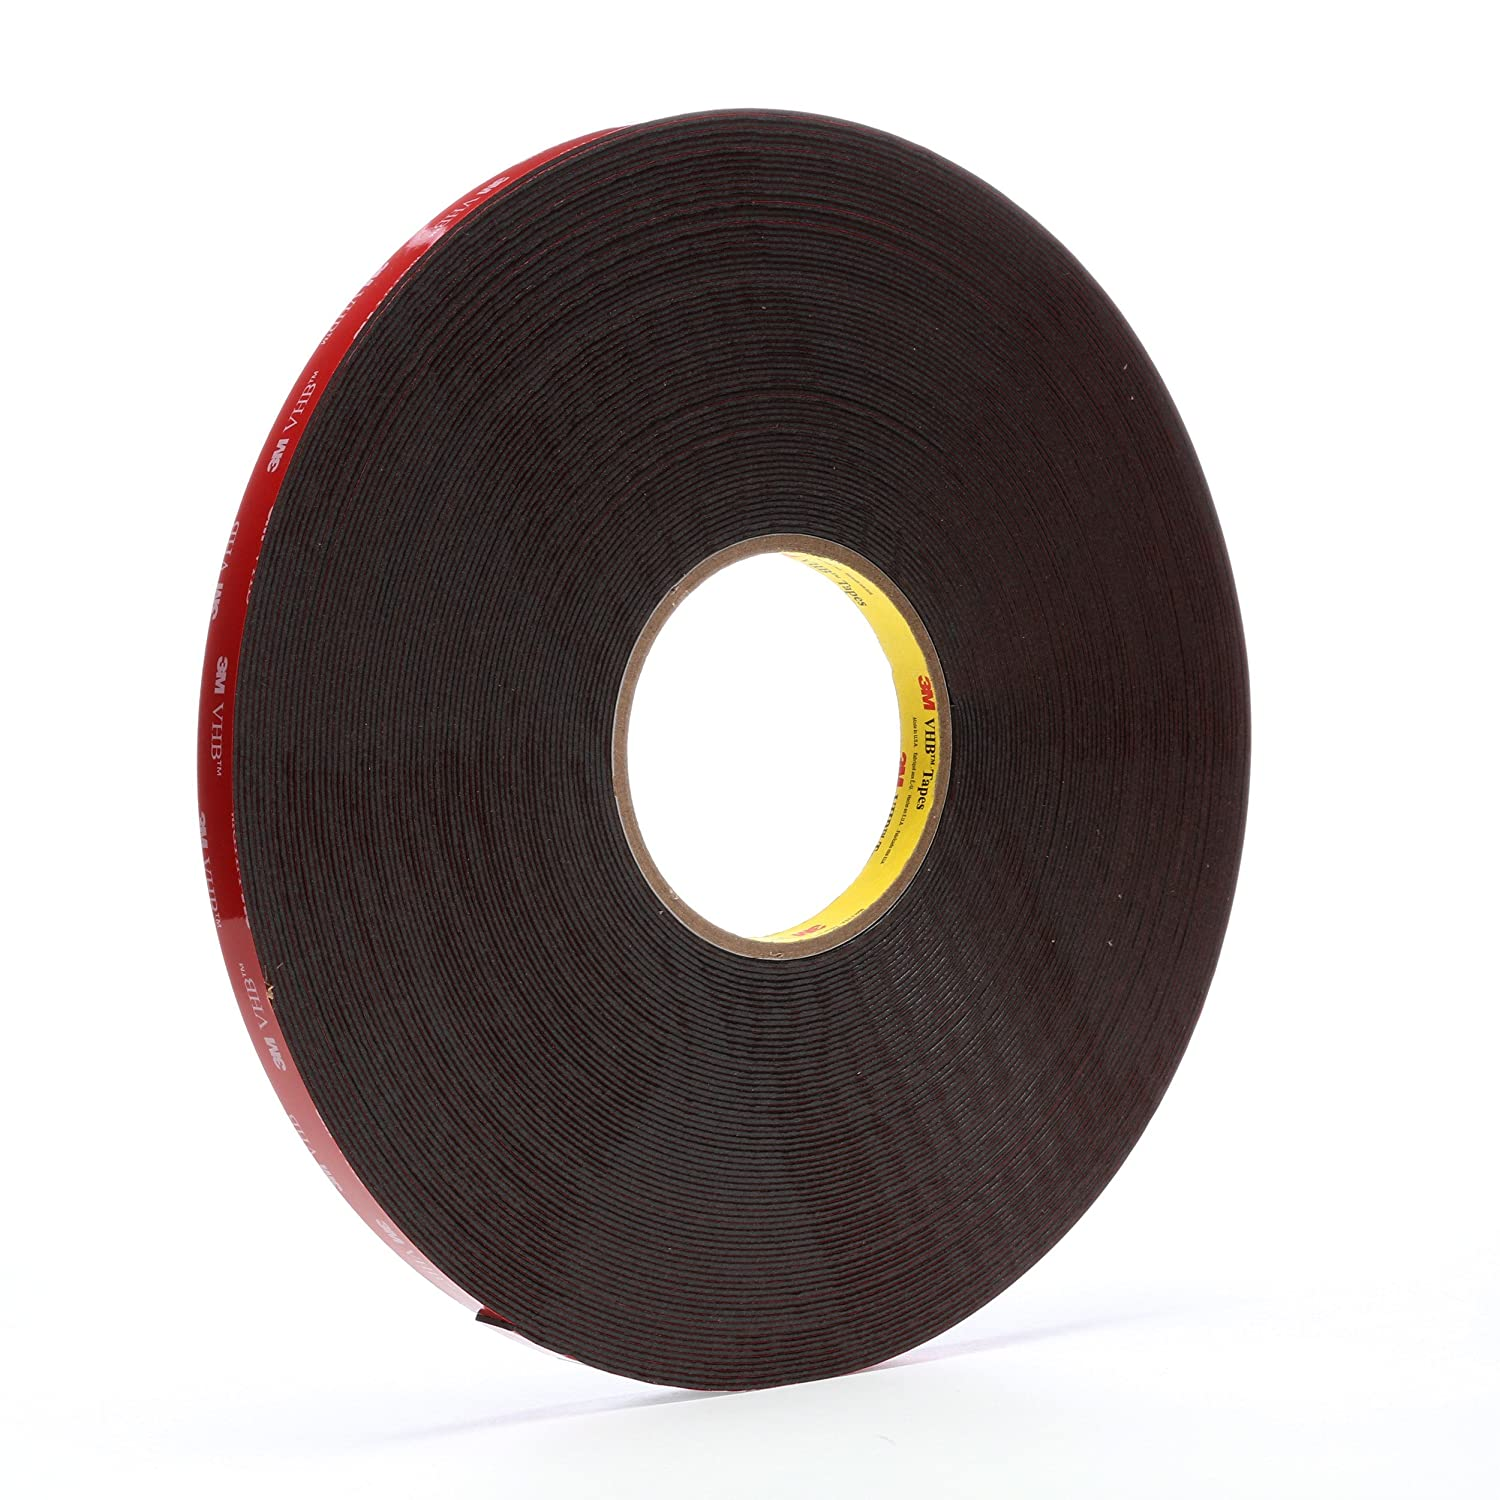 1 Pack//6 Pieces 4 width x 8 length 3M VHB Heavy Duty Mounting Tape 5952